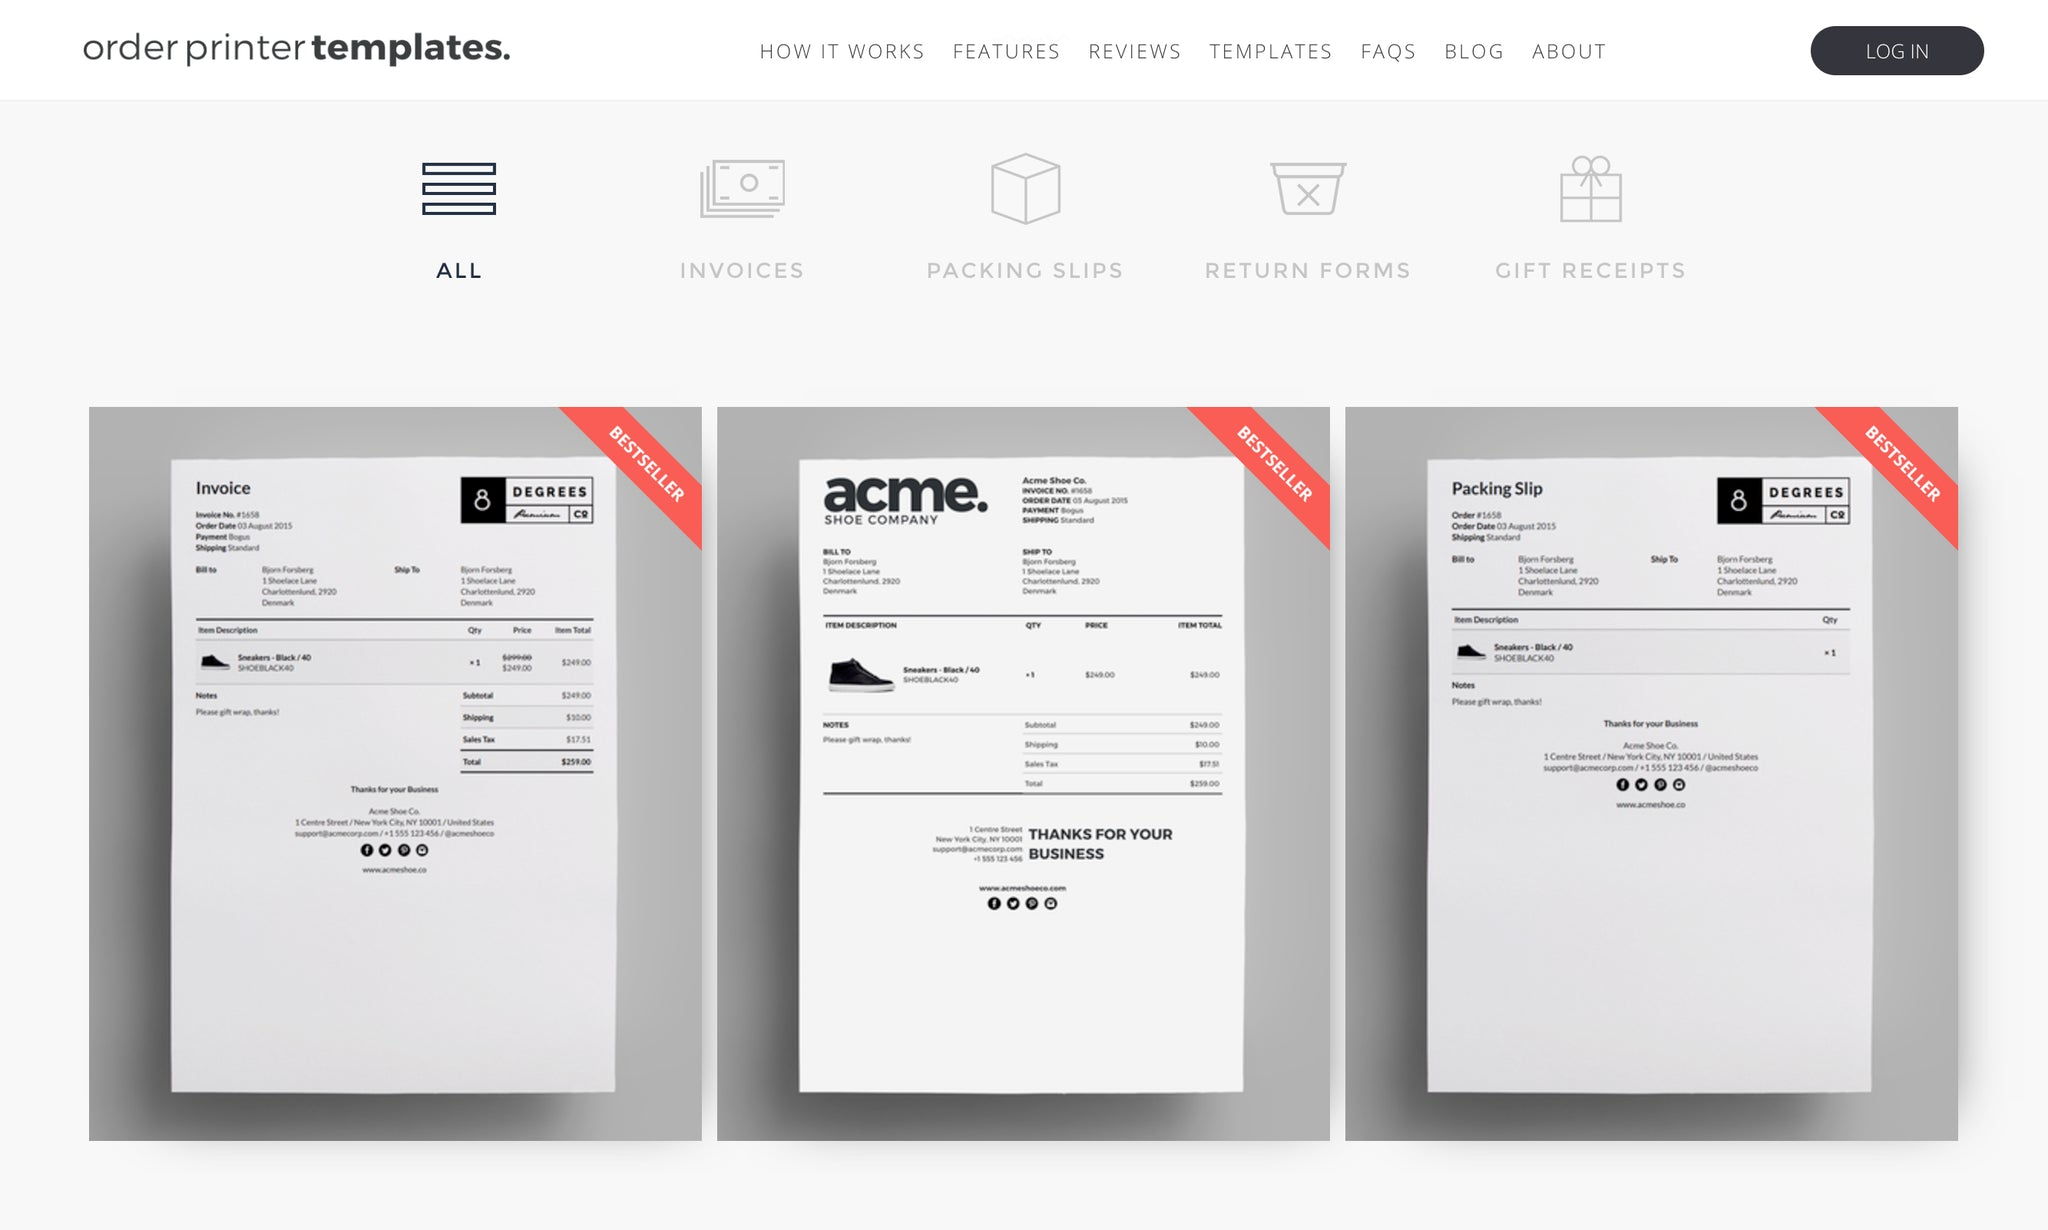 Invoices In Shopify The Definitive Guide Shopify You - Proforma invoice template pdf free download buy online pickup in store same day